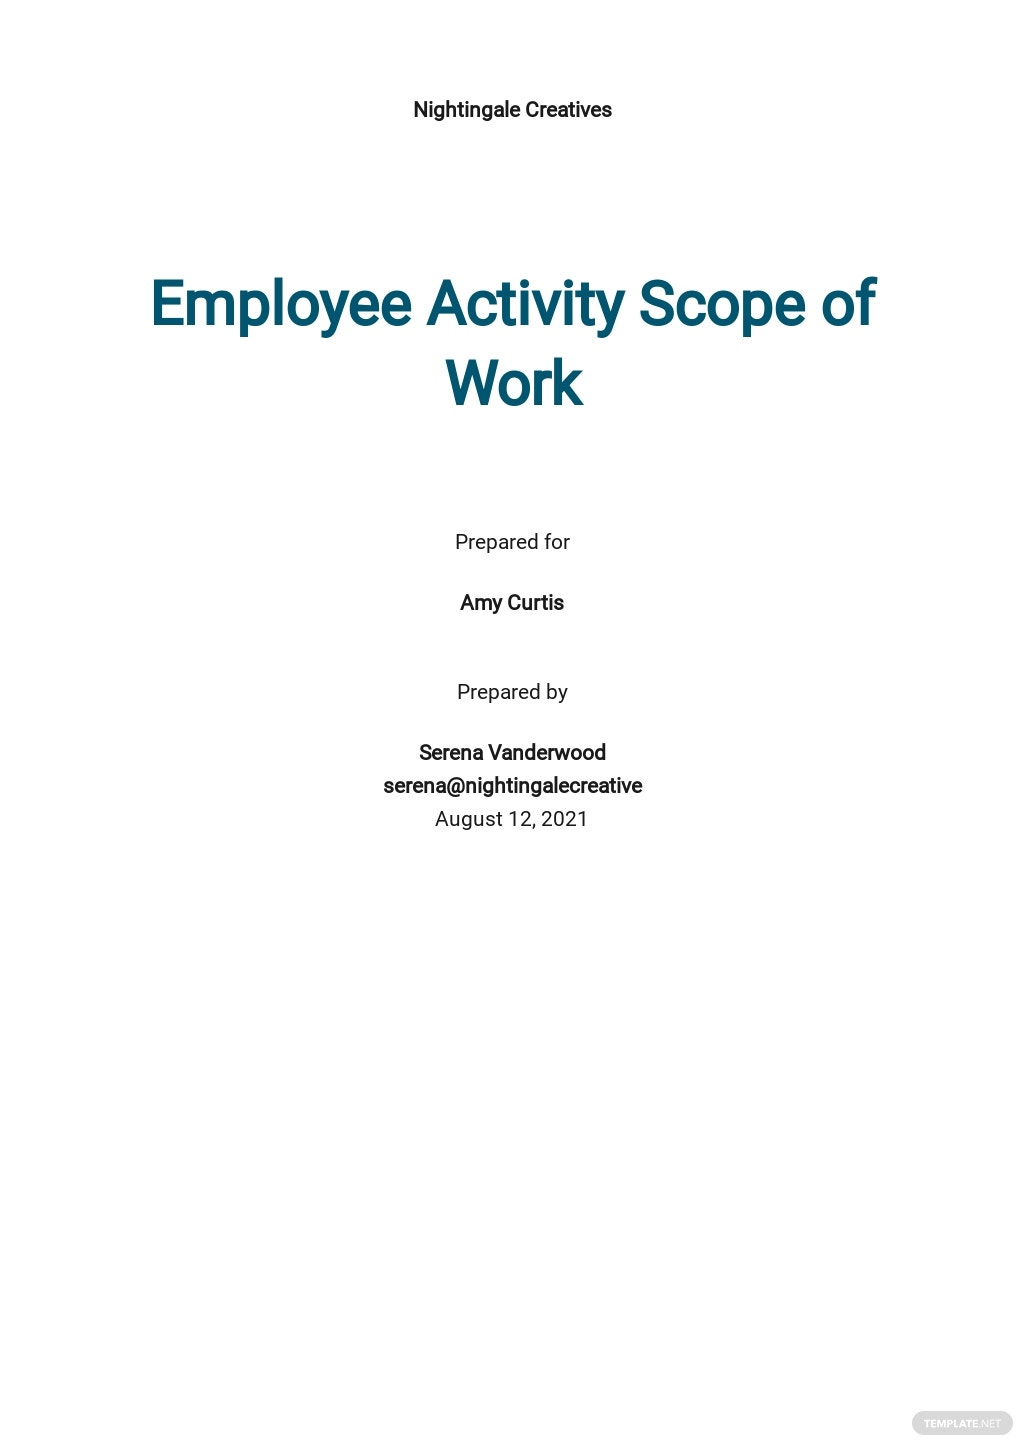 Employee Activity Scope of Work Template